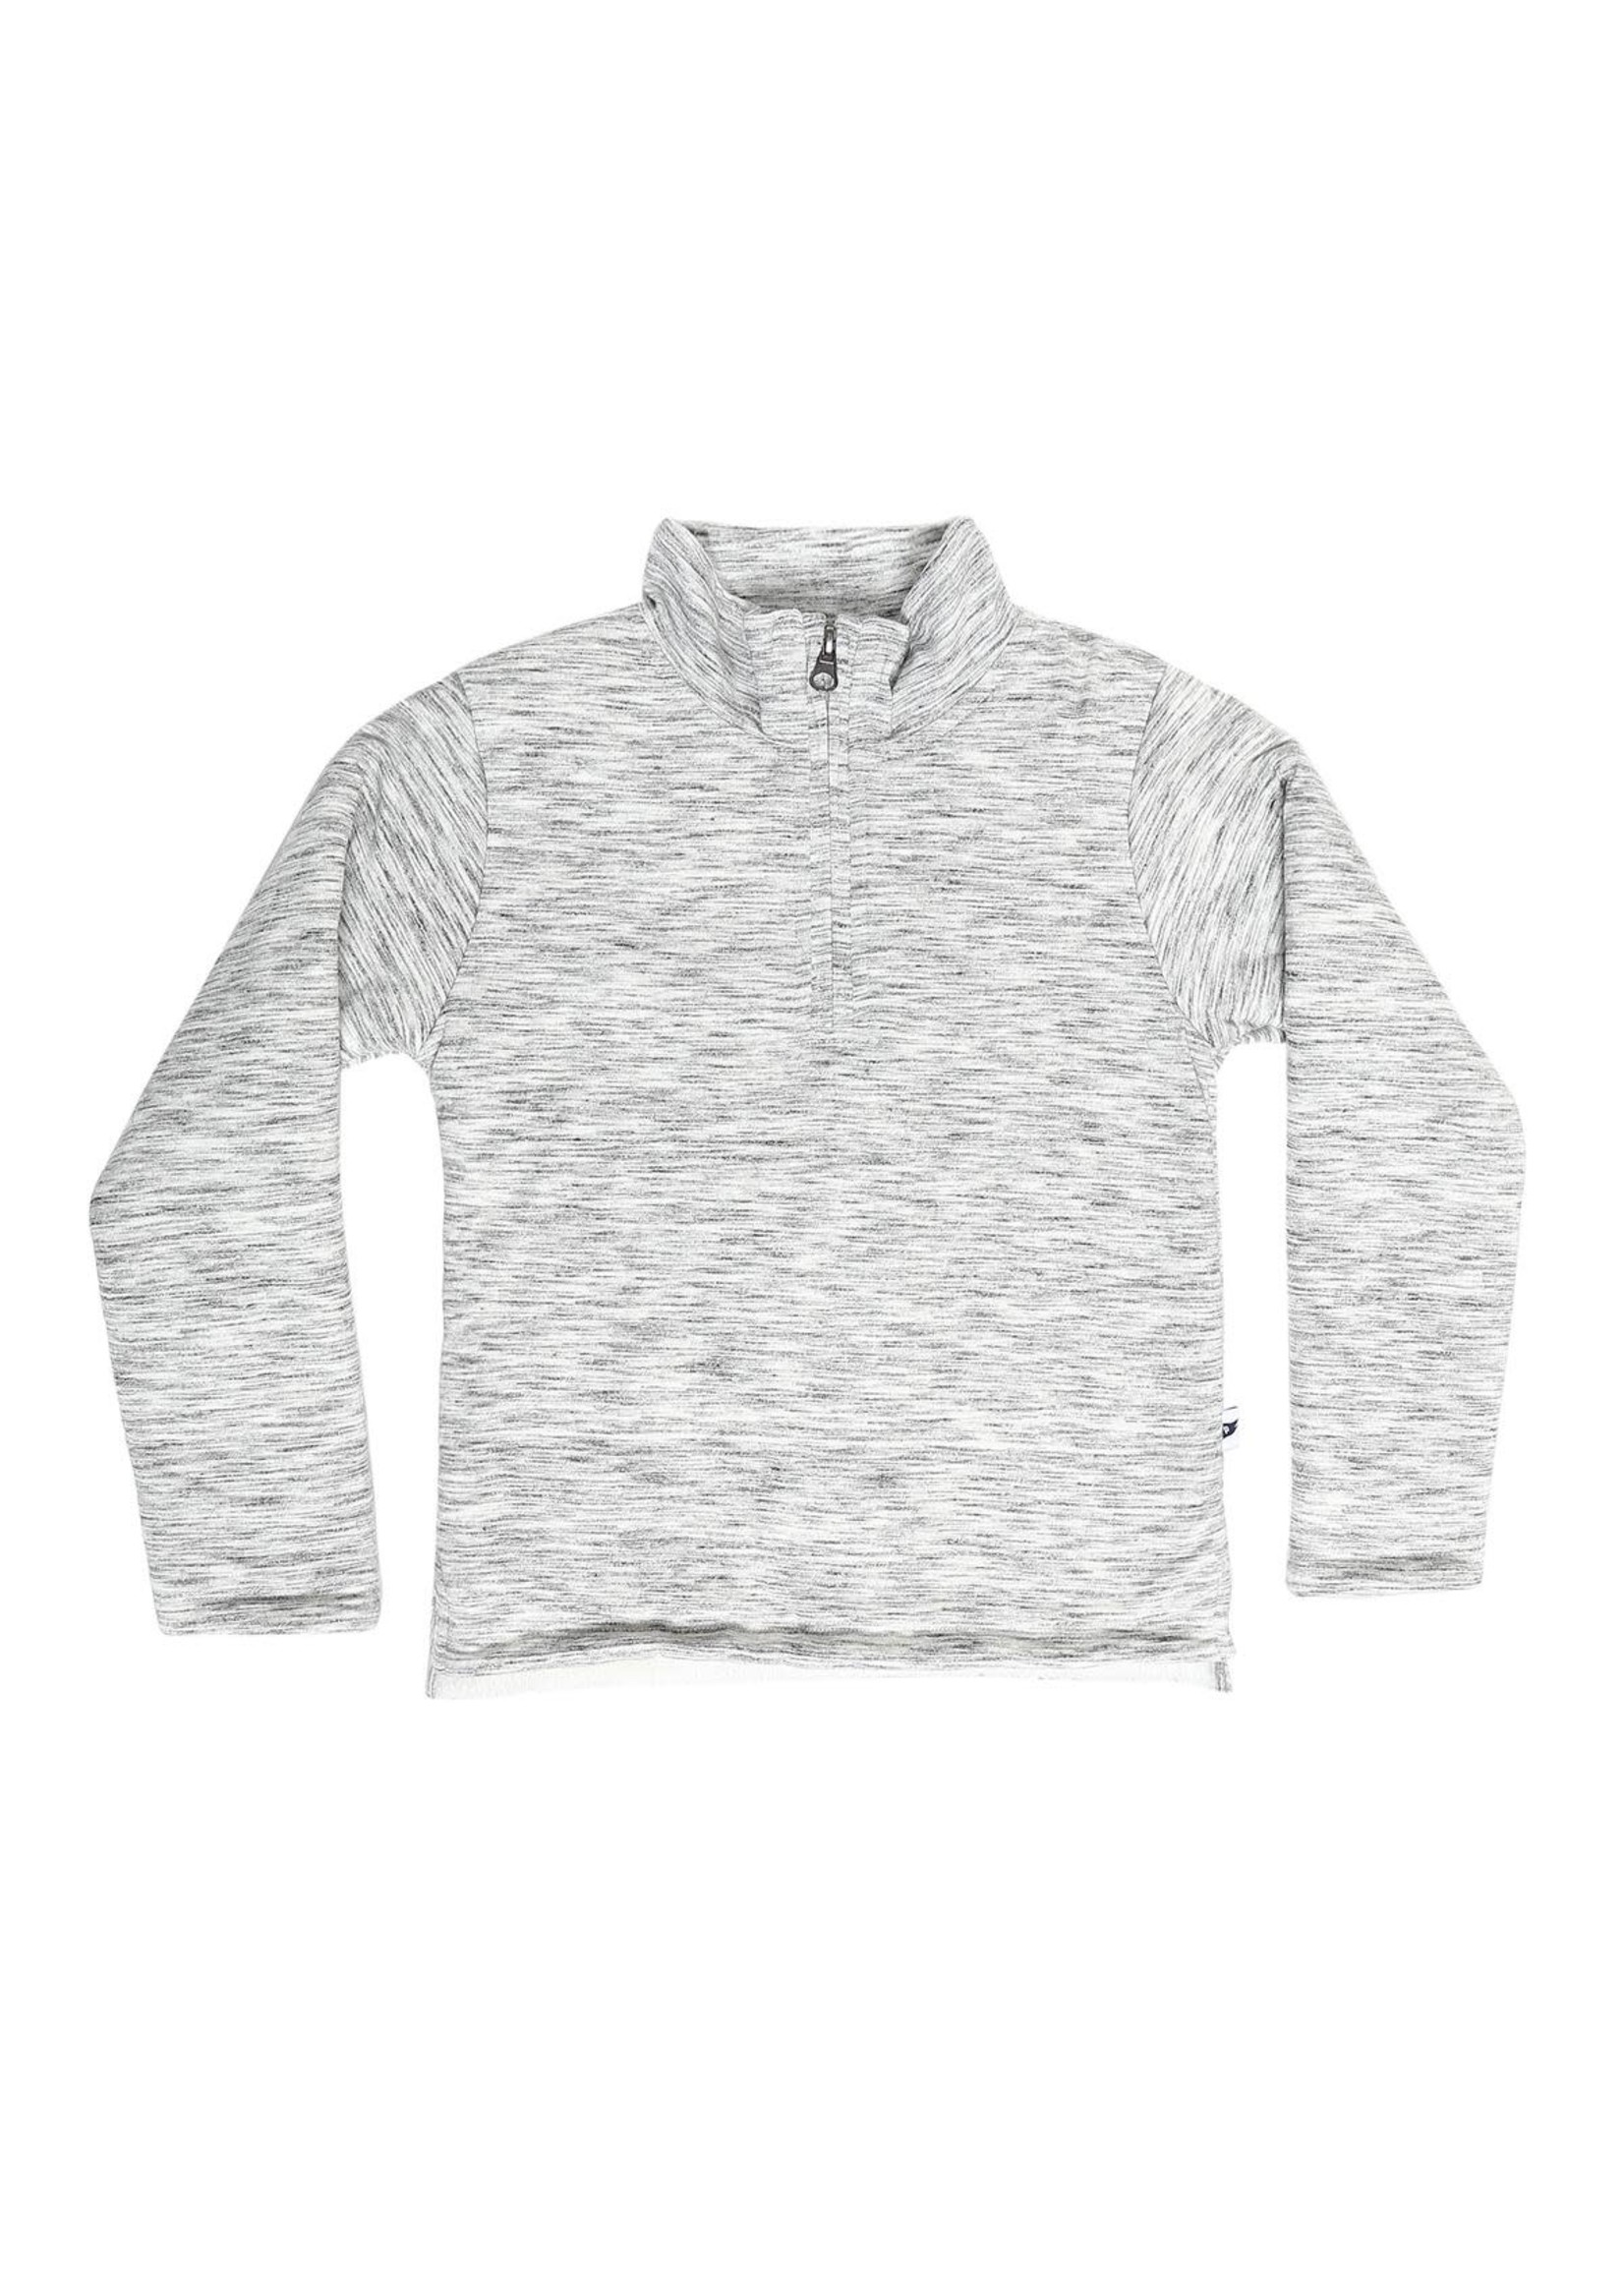 Pedal Pedal Grey Quarter Zip Sherpa Pullover